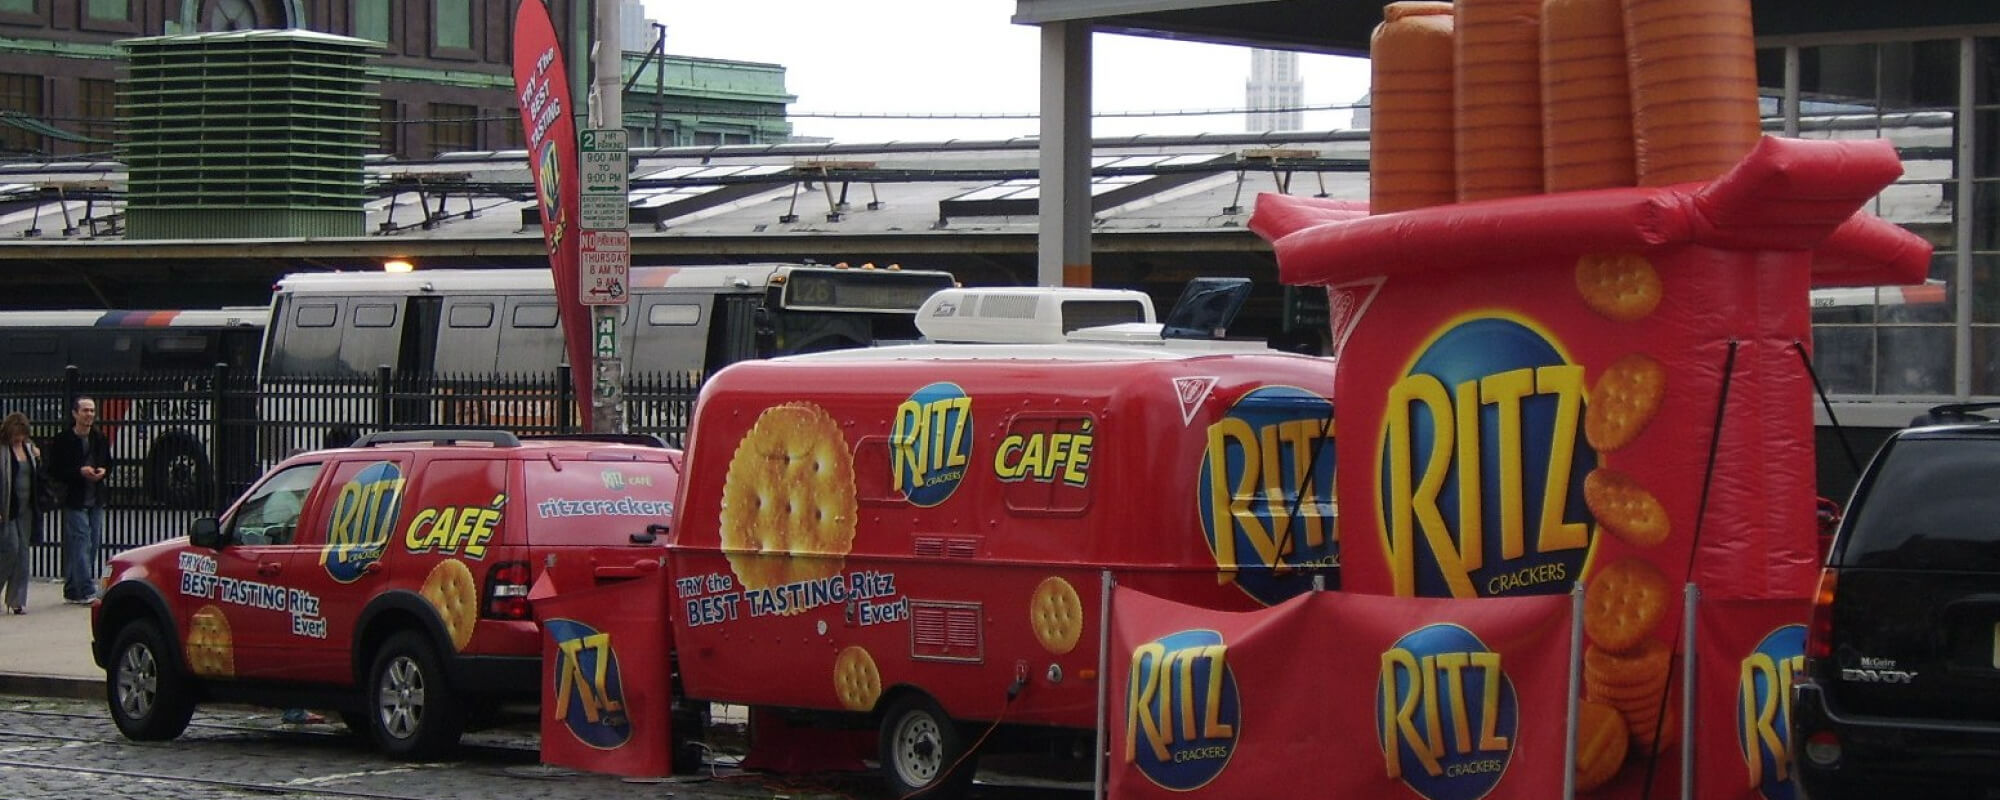 a truck with a trailer, all containing the Ritz logo